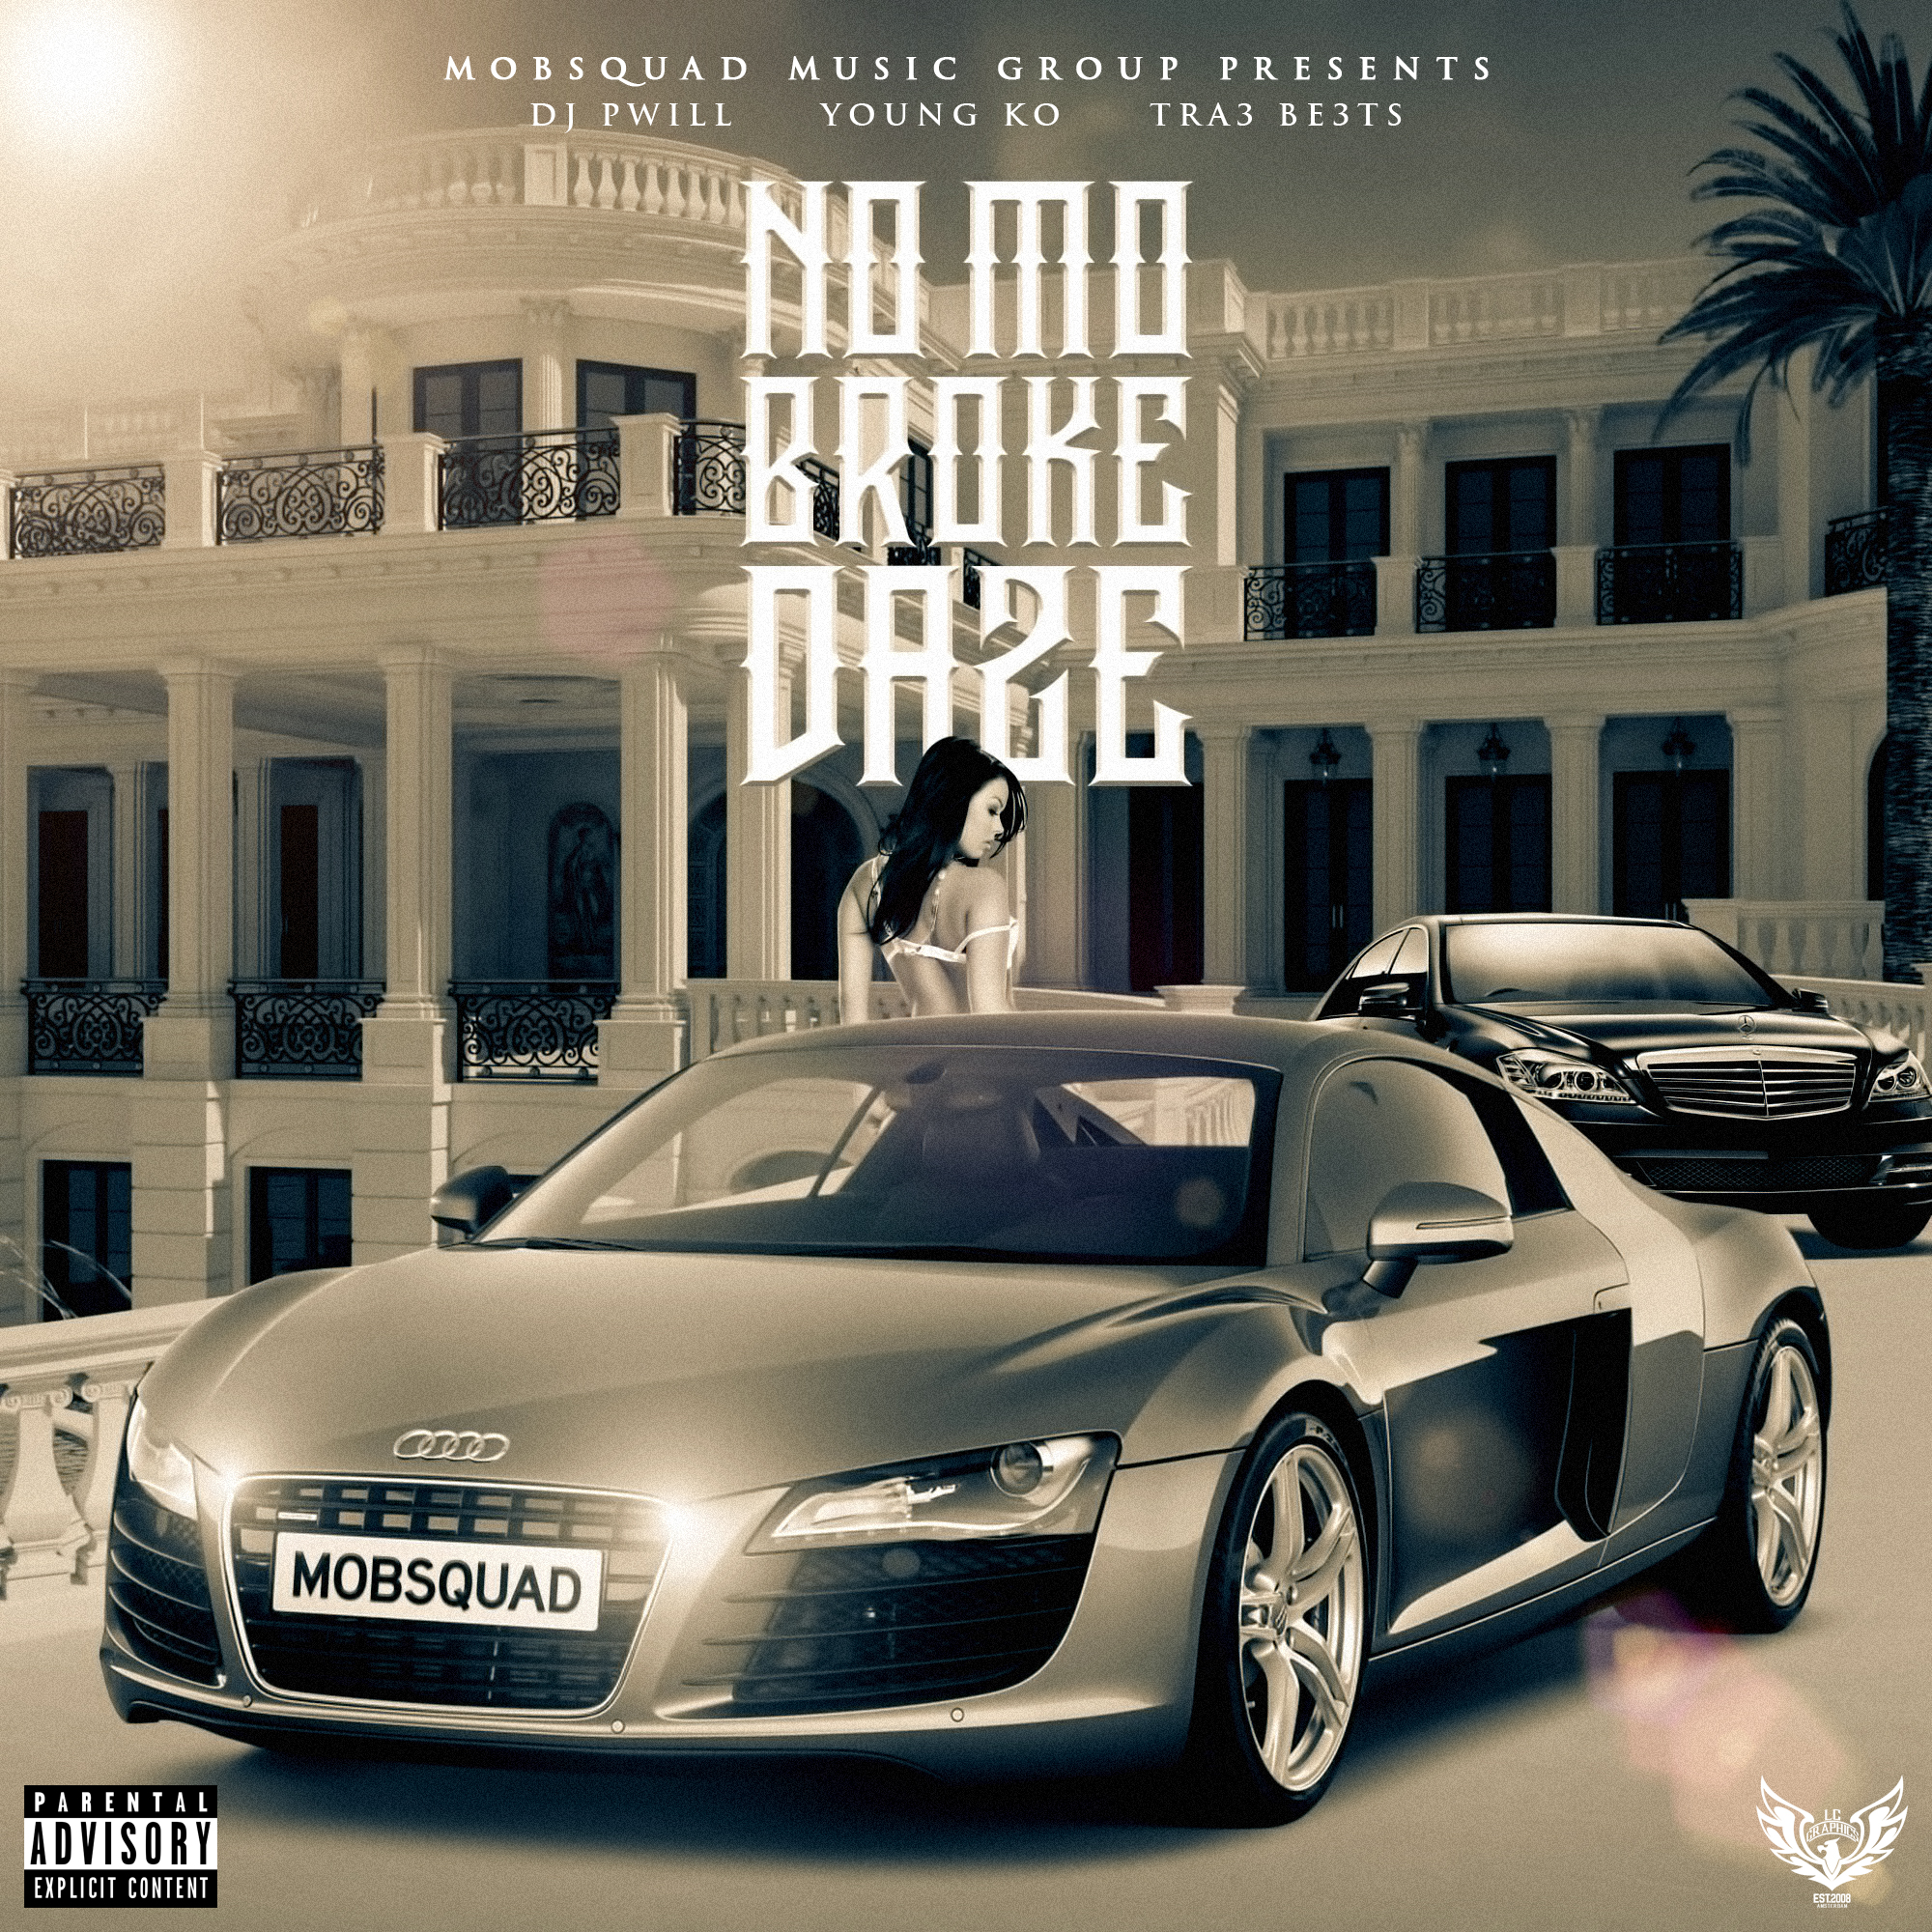 DJ PWill Ft. Young KO - No Mo Broke Daze (Produced by Tra3 B3ats) cover art (byLCGraphics)